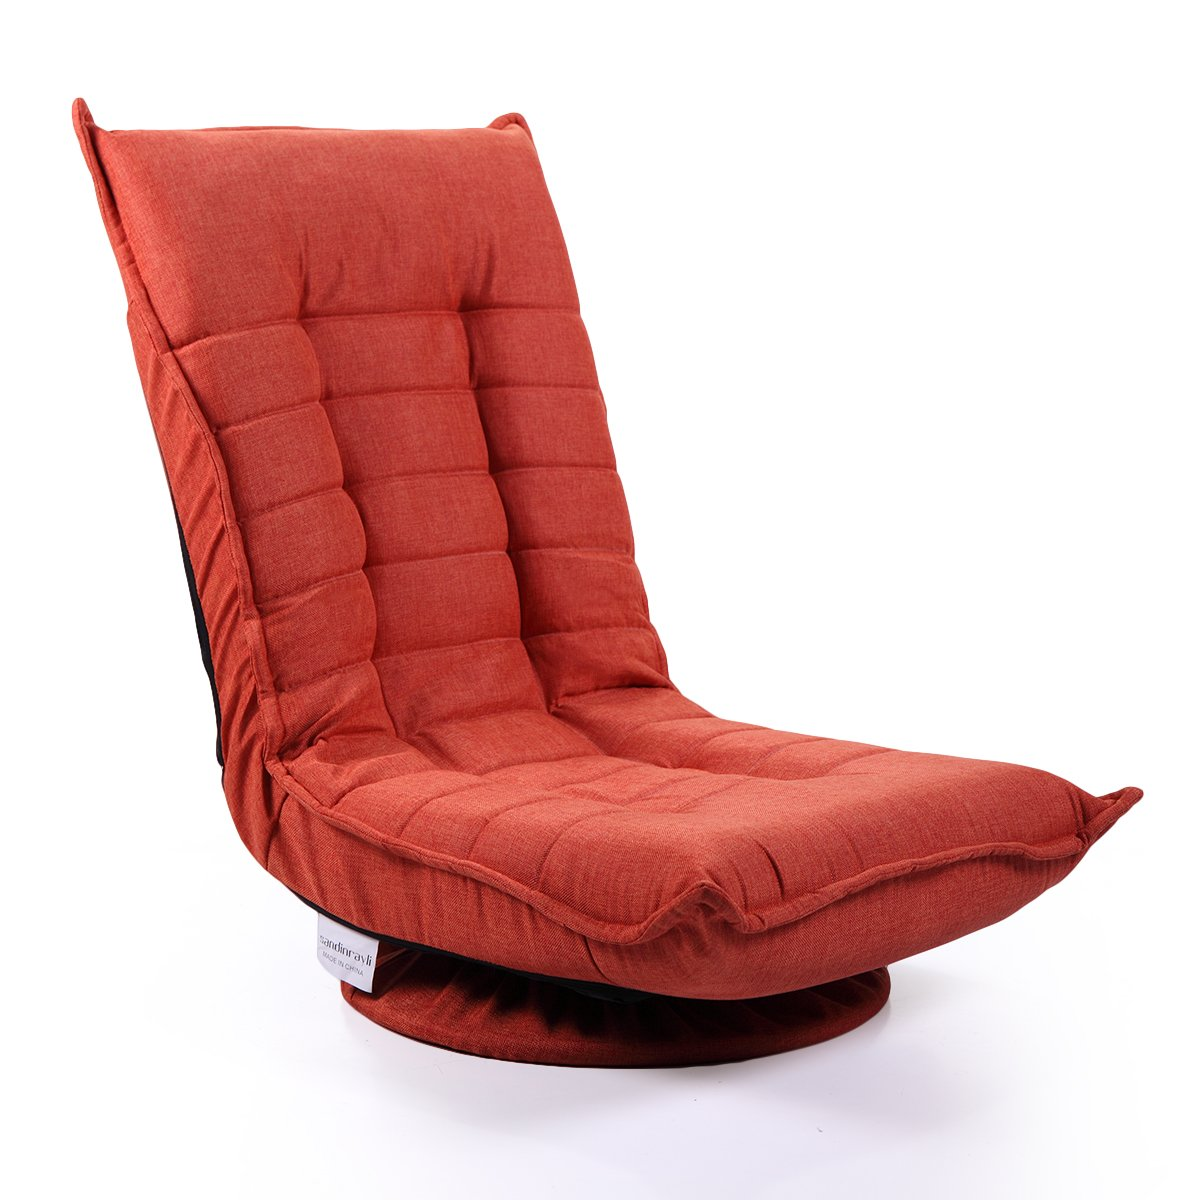 Tobbi Fabric Folded Floor Chair 360 Rotation Swivel Video Rocker Gaming Sofa Chair Adjustable Angle Chair Orange Red